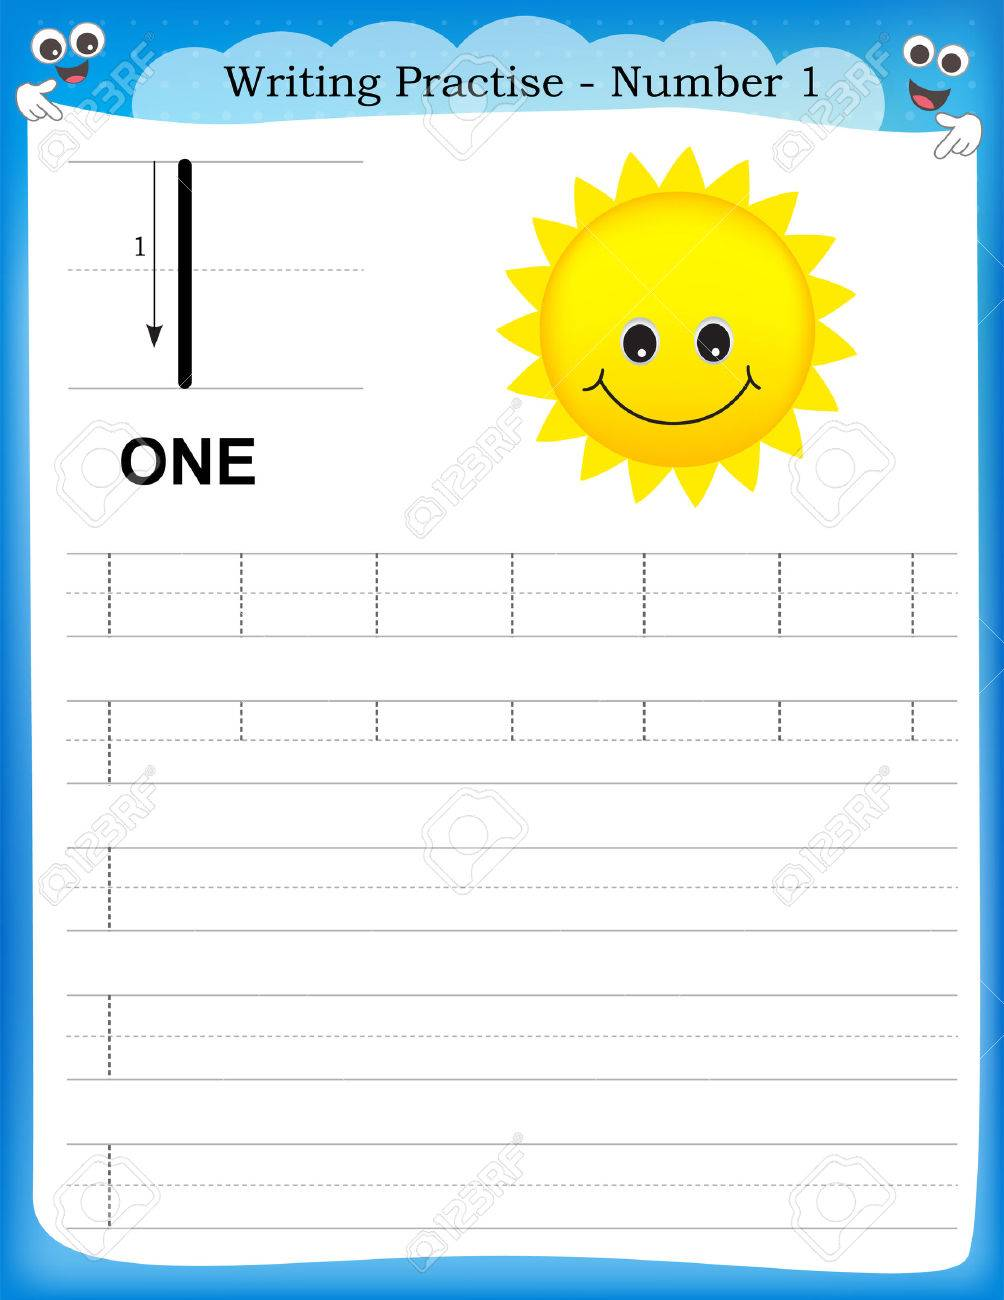 photo regarding Number One Printable named Composing teach variety a single printable worksheet for preschool..